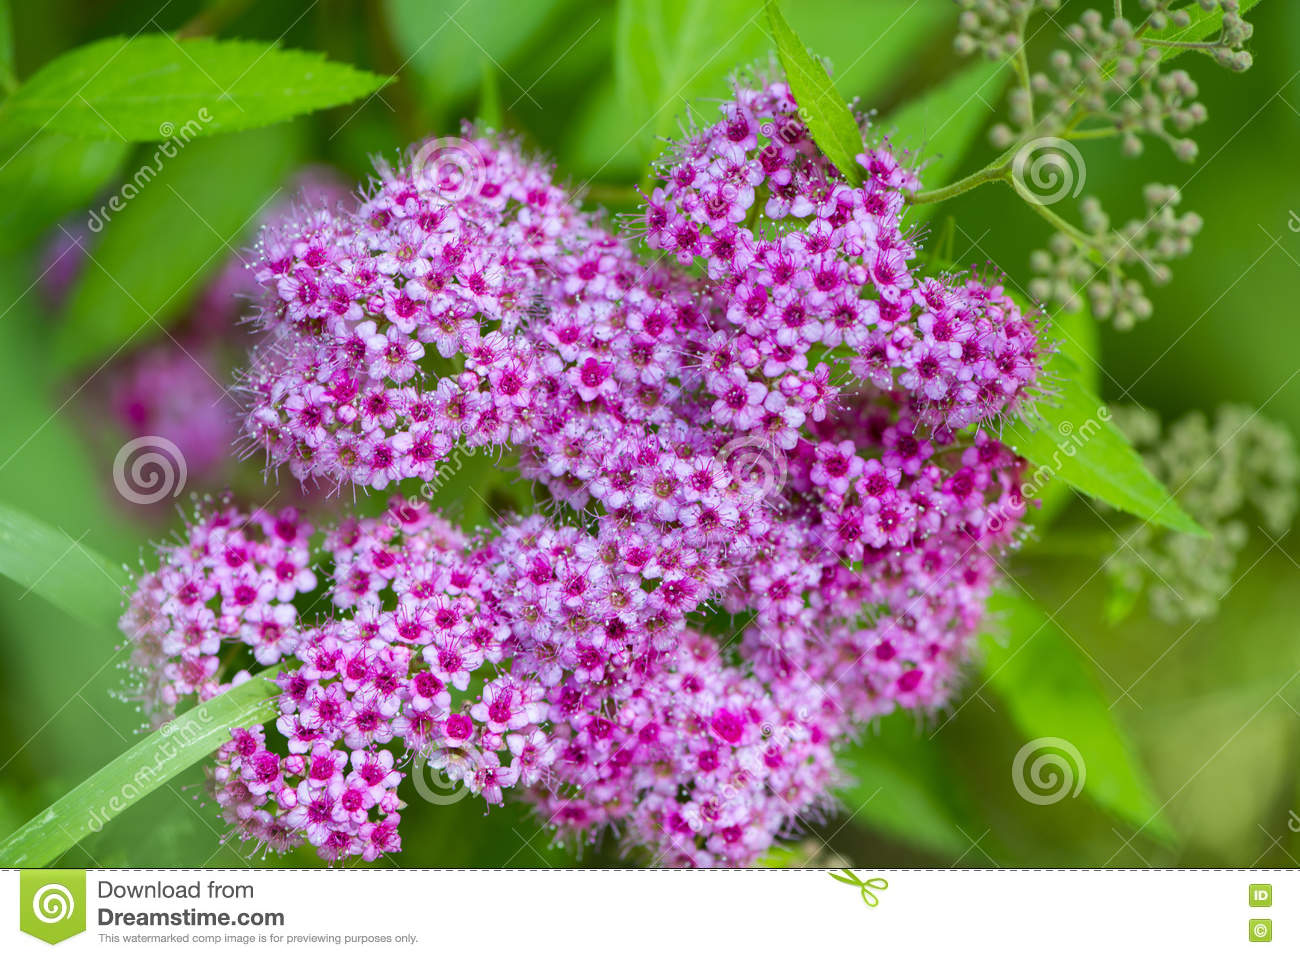 Beautiful flowers for cards and greetings stock image image of royalty free stock photo izmirmasajfo